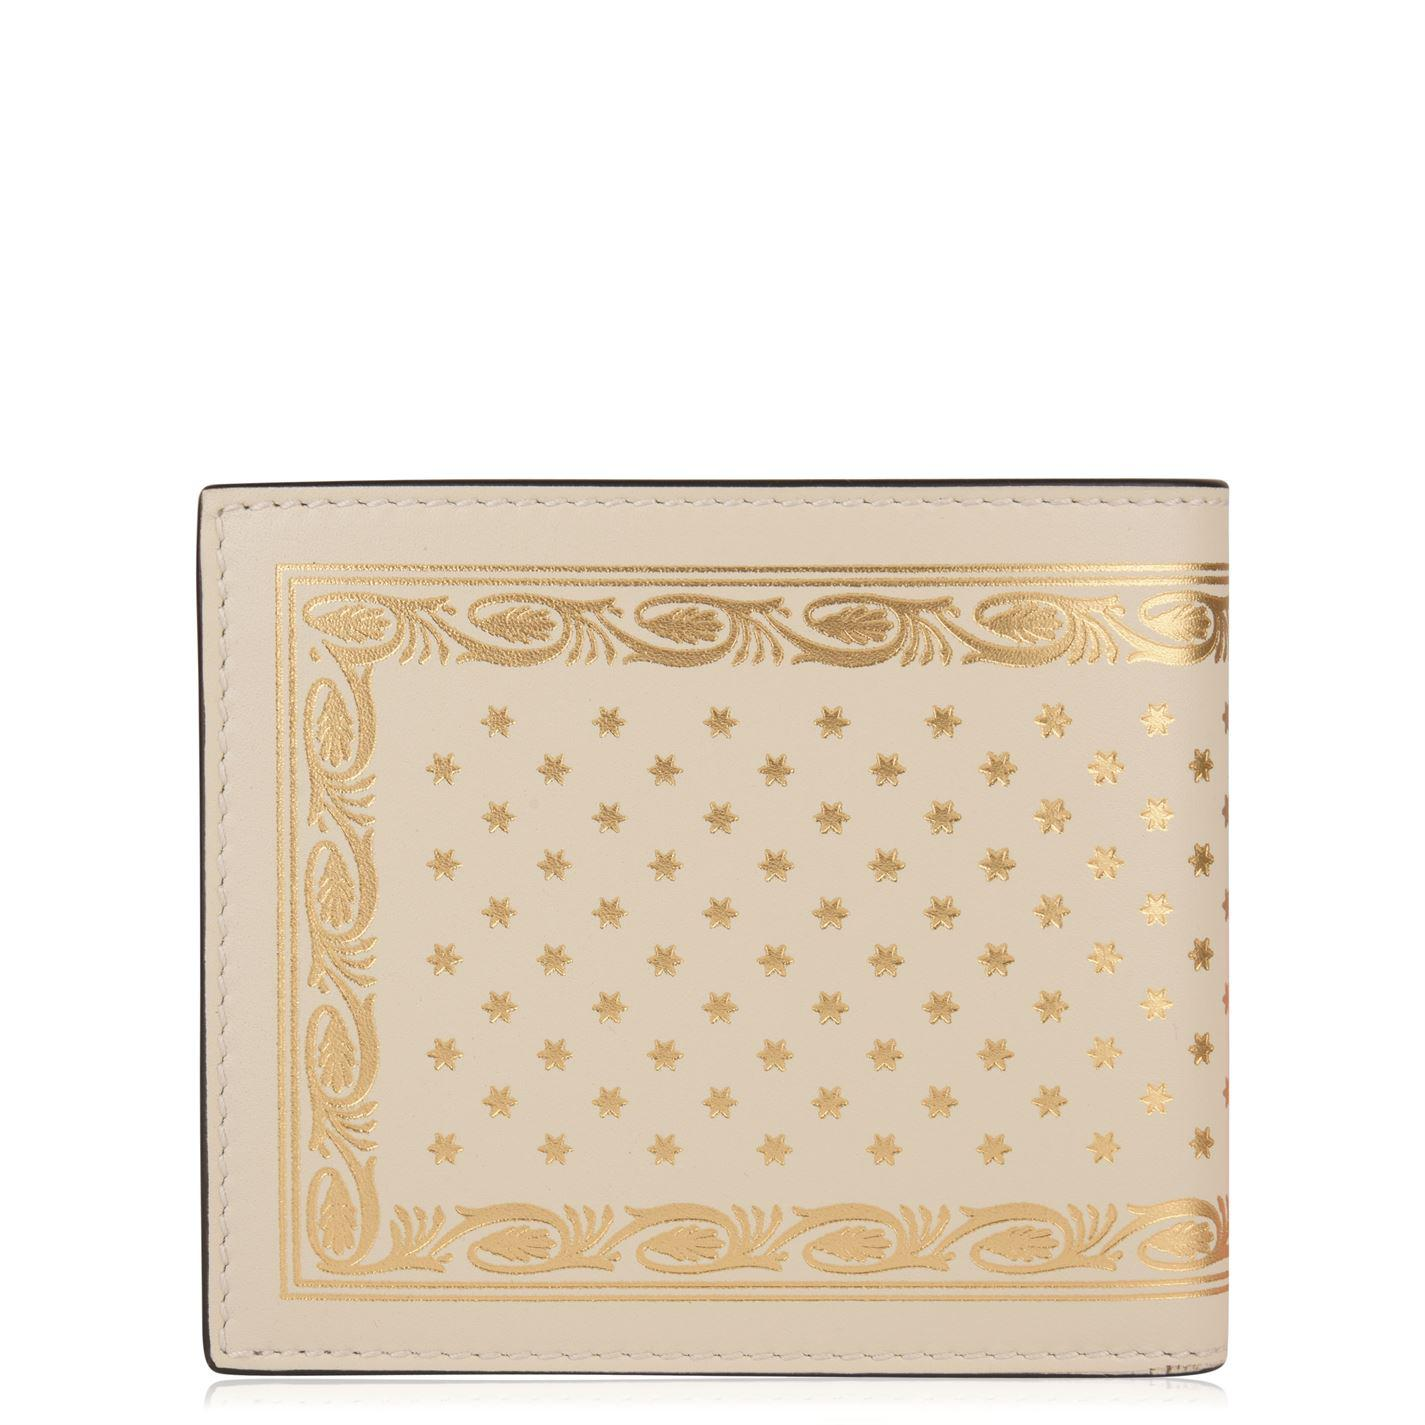 e540d5a3c261 Gucci - White Guccy Bifold Wallet for Men - Lyst. View fullscreen